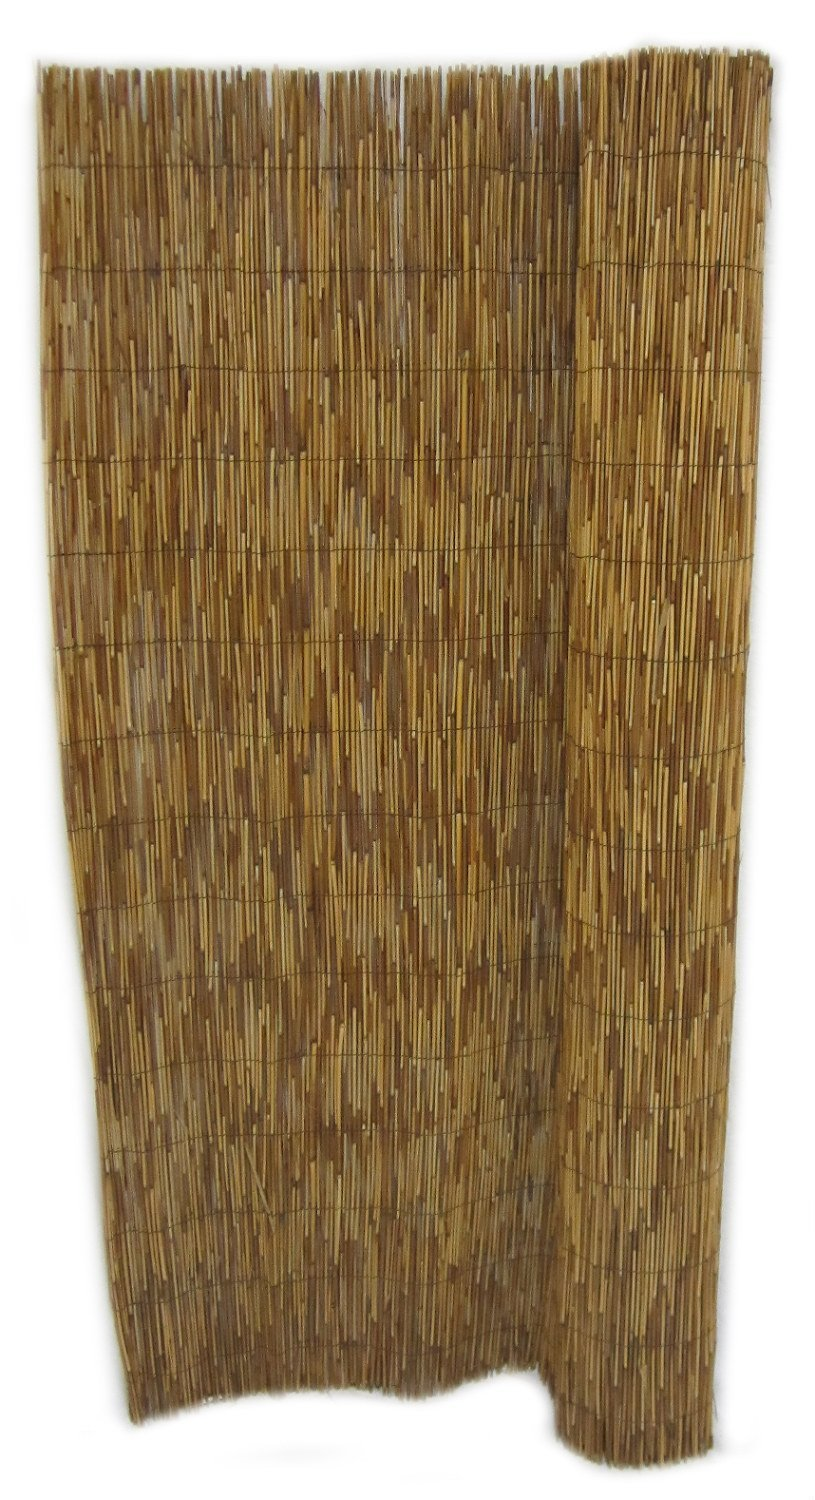 FOREVER BAMBOO 2-pack 6' X 16' Coffee Reed Fencing